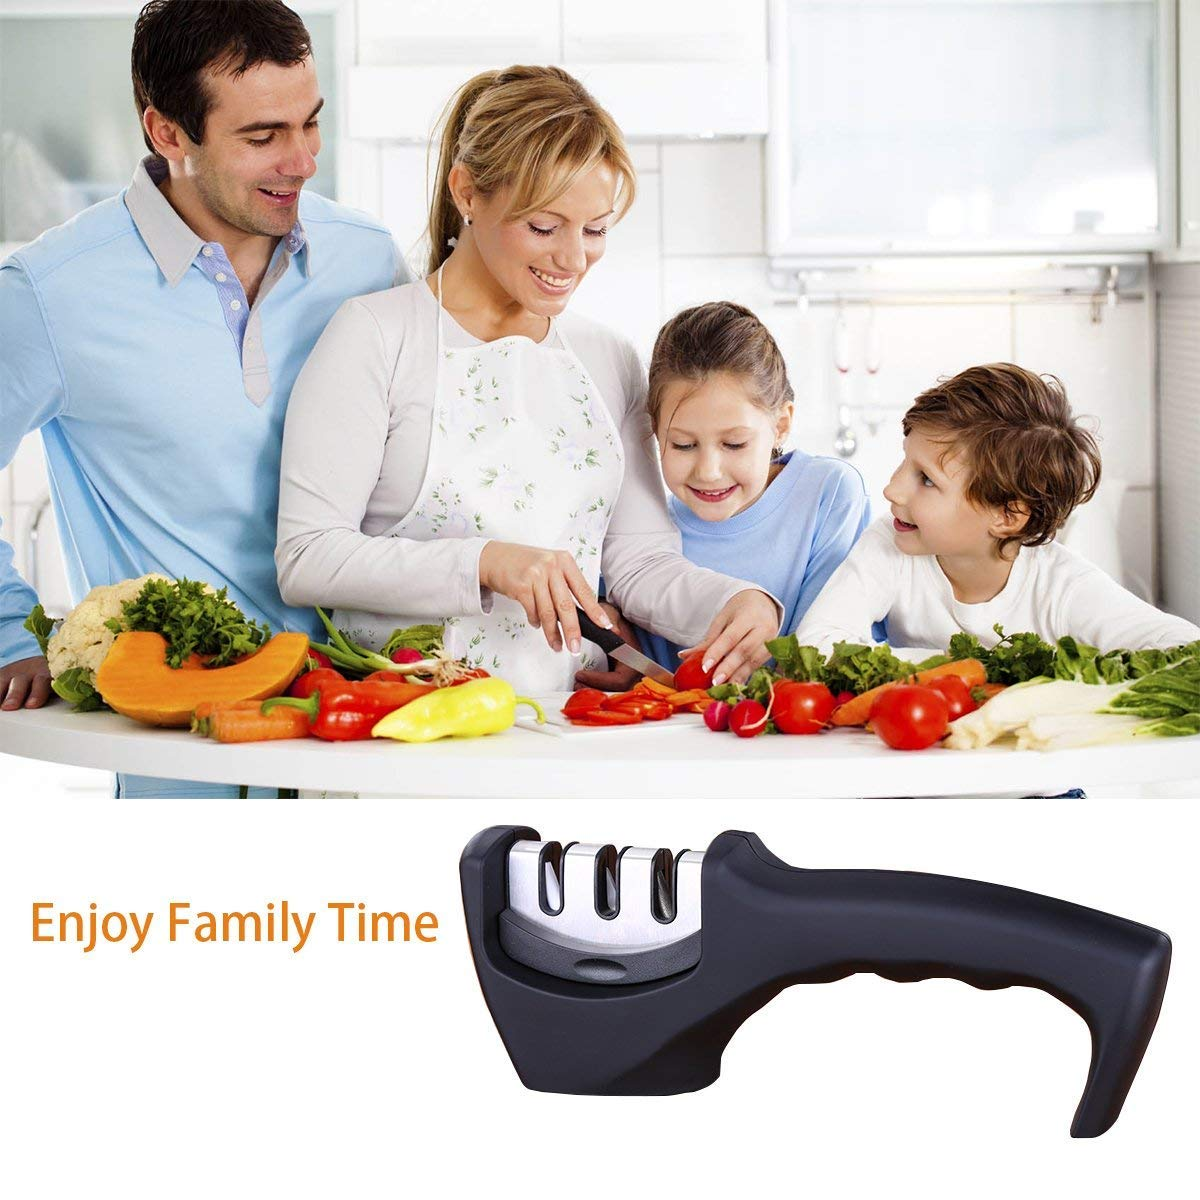 Knife Sharpener- Professional Kitchen Knife Sharpener 3 Stage Steel Diamond Ceramic Coated Kitchen Sharpening Tool with Cut Resistant Glove - Non-slip Base Chef Knife Sharpening Kit Easy to Control by HKSH (Image #5)